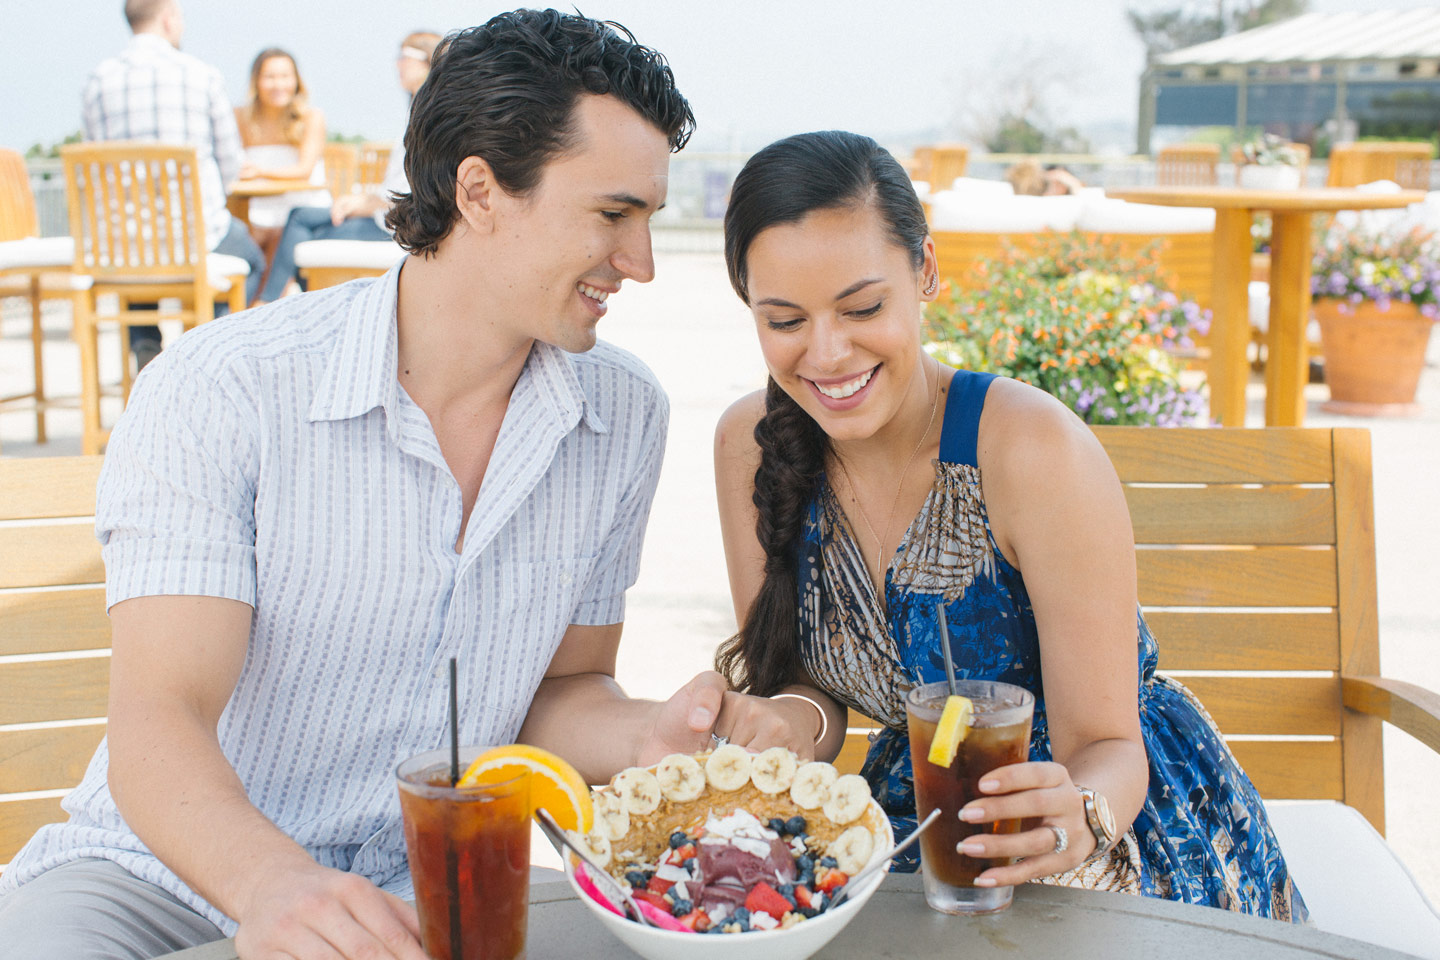 young couple smiling and enjoying food and drinks at del mar plaza